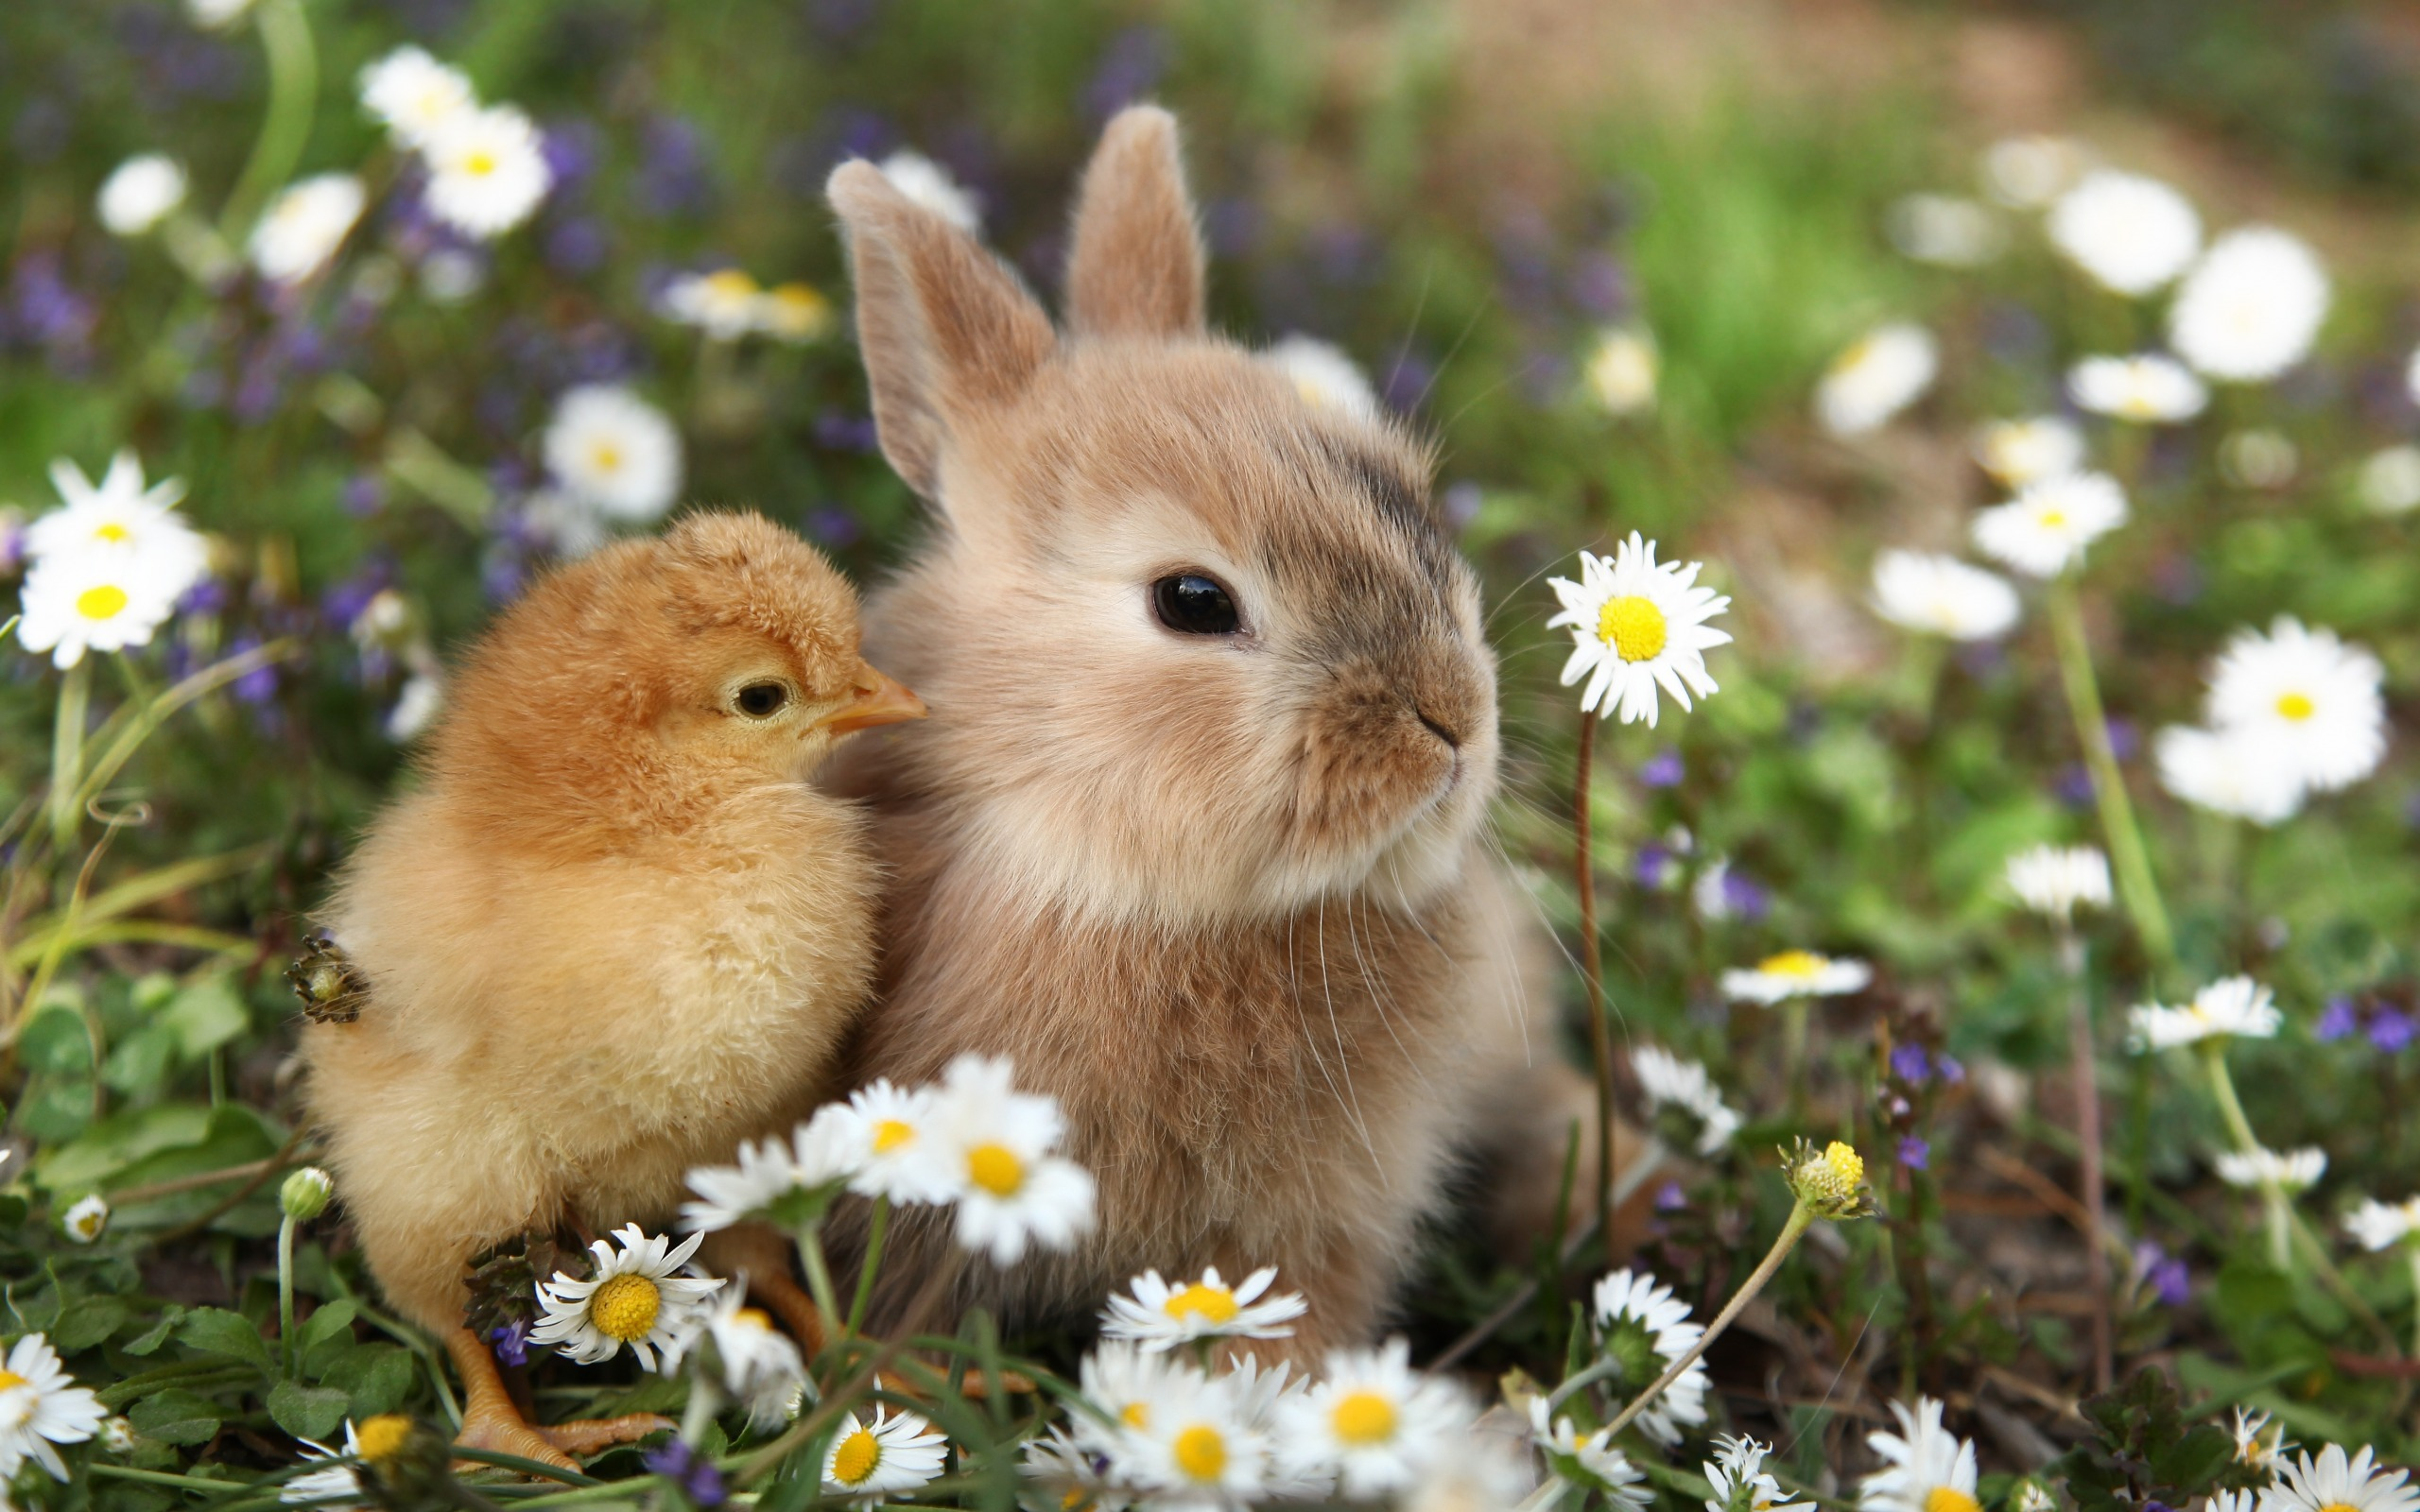 Download wallpapers cute animals, rabbit, little chick